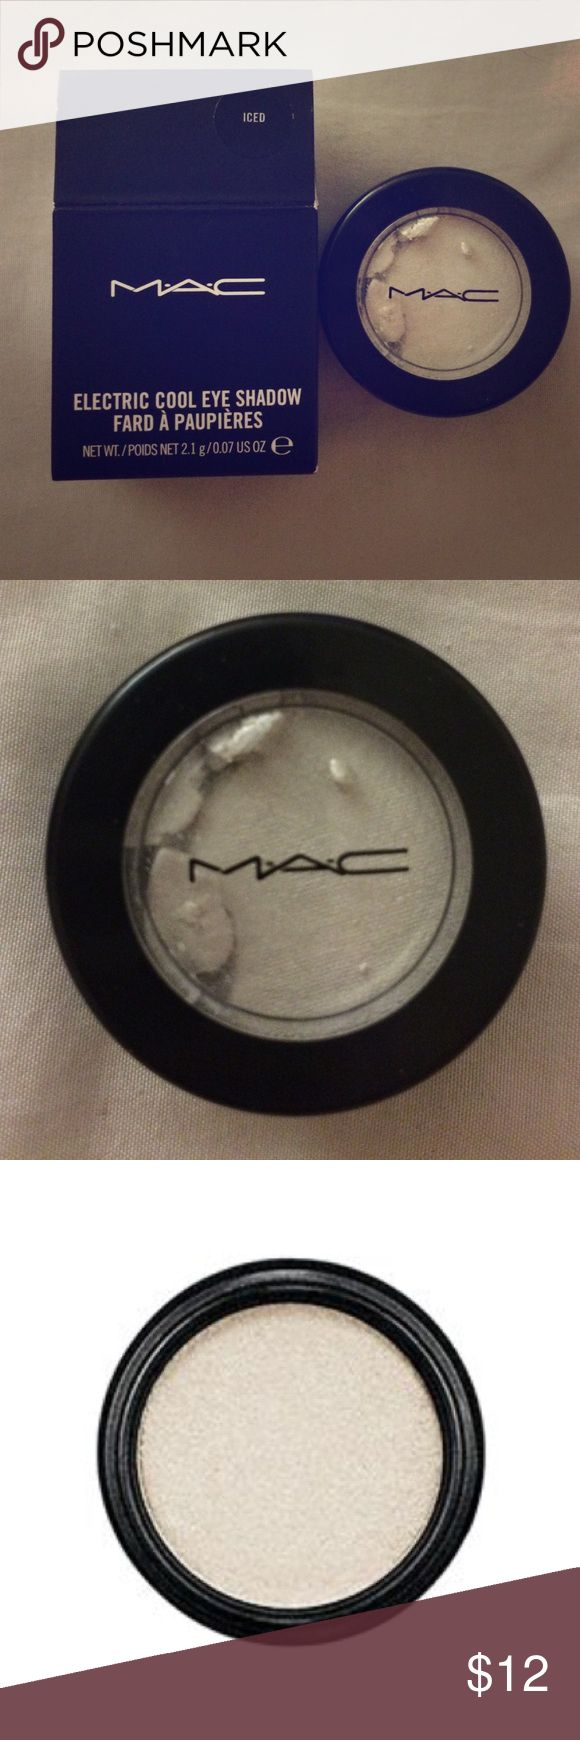 """MAC Iced Electric Cool Eyeshadow A high-frost, shiny pigmented eye shadow with a soft, spongy texture. A pearly white shade with some shimmer. As per MAC's website: """"Electric Cool eyeshadow's unique flexible texture may shift in the package if dropped or subjected to extraordinary use. If this happens, product performance will not be compromised. Pat the """"cake"""" into place in the pan and apply as usual."""" MAC Cosmetics Makeup Eyeshadow"""